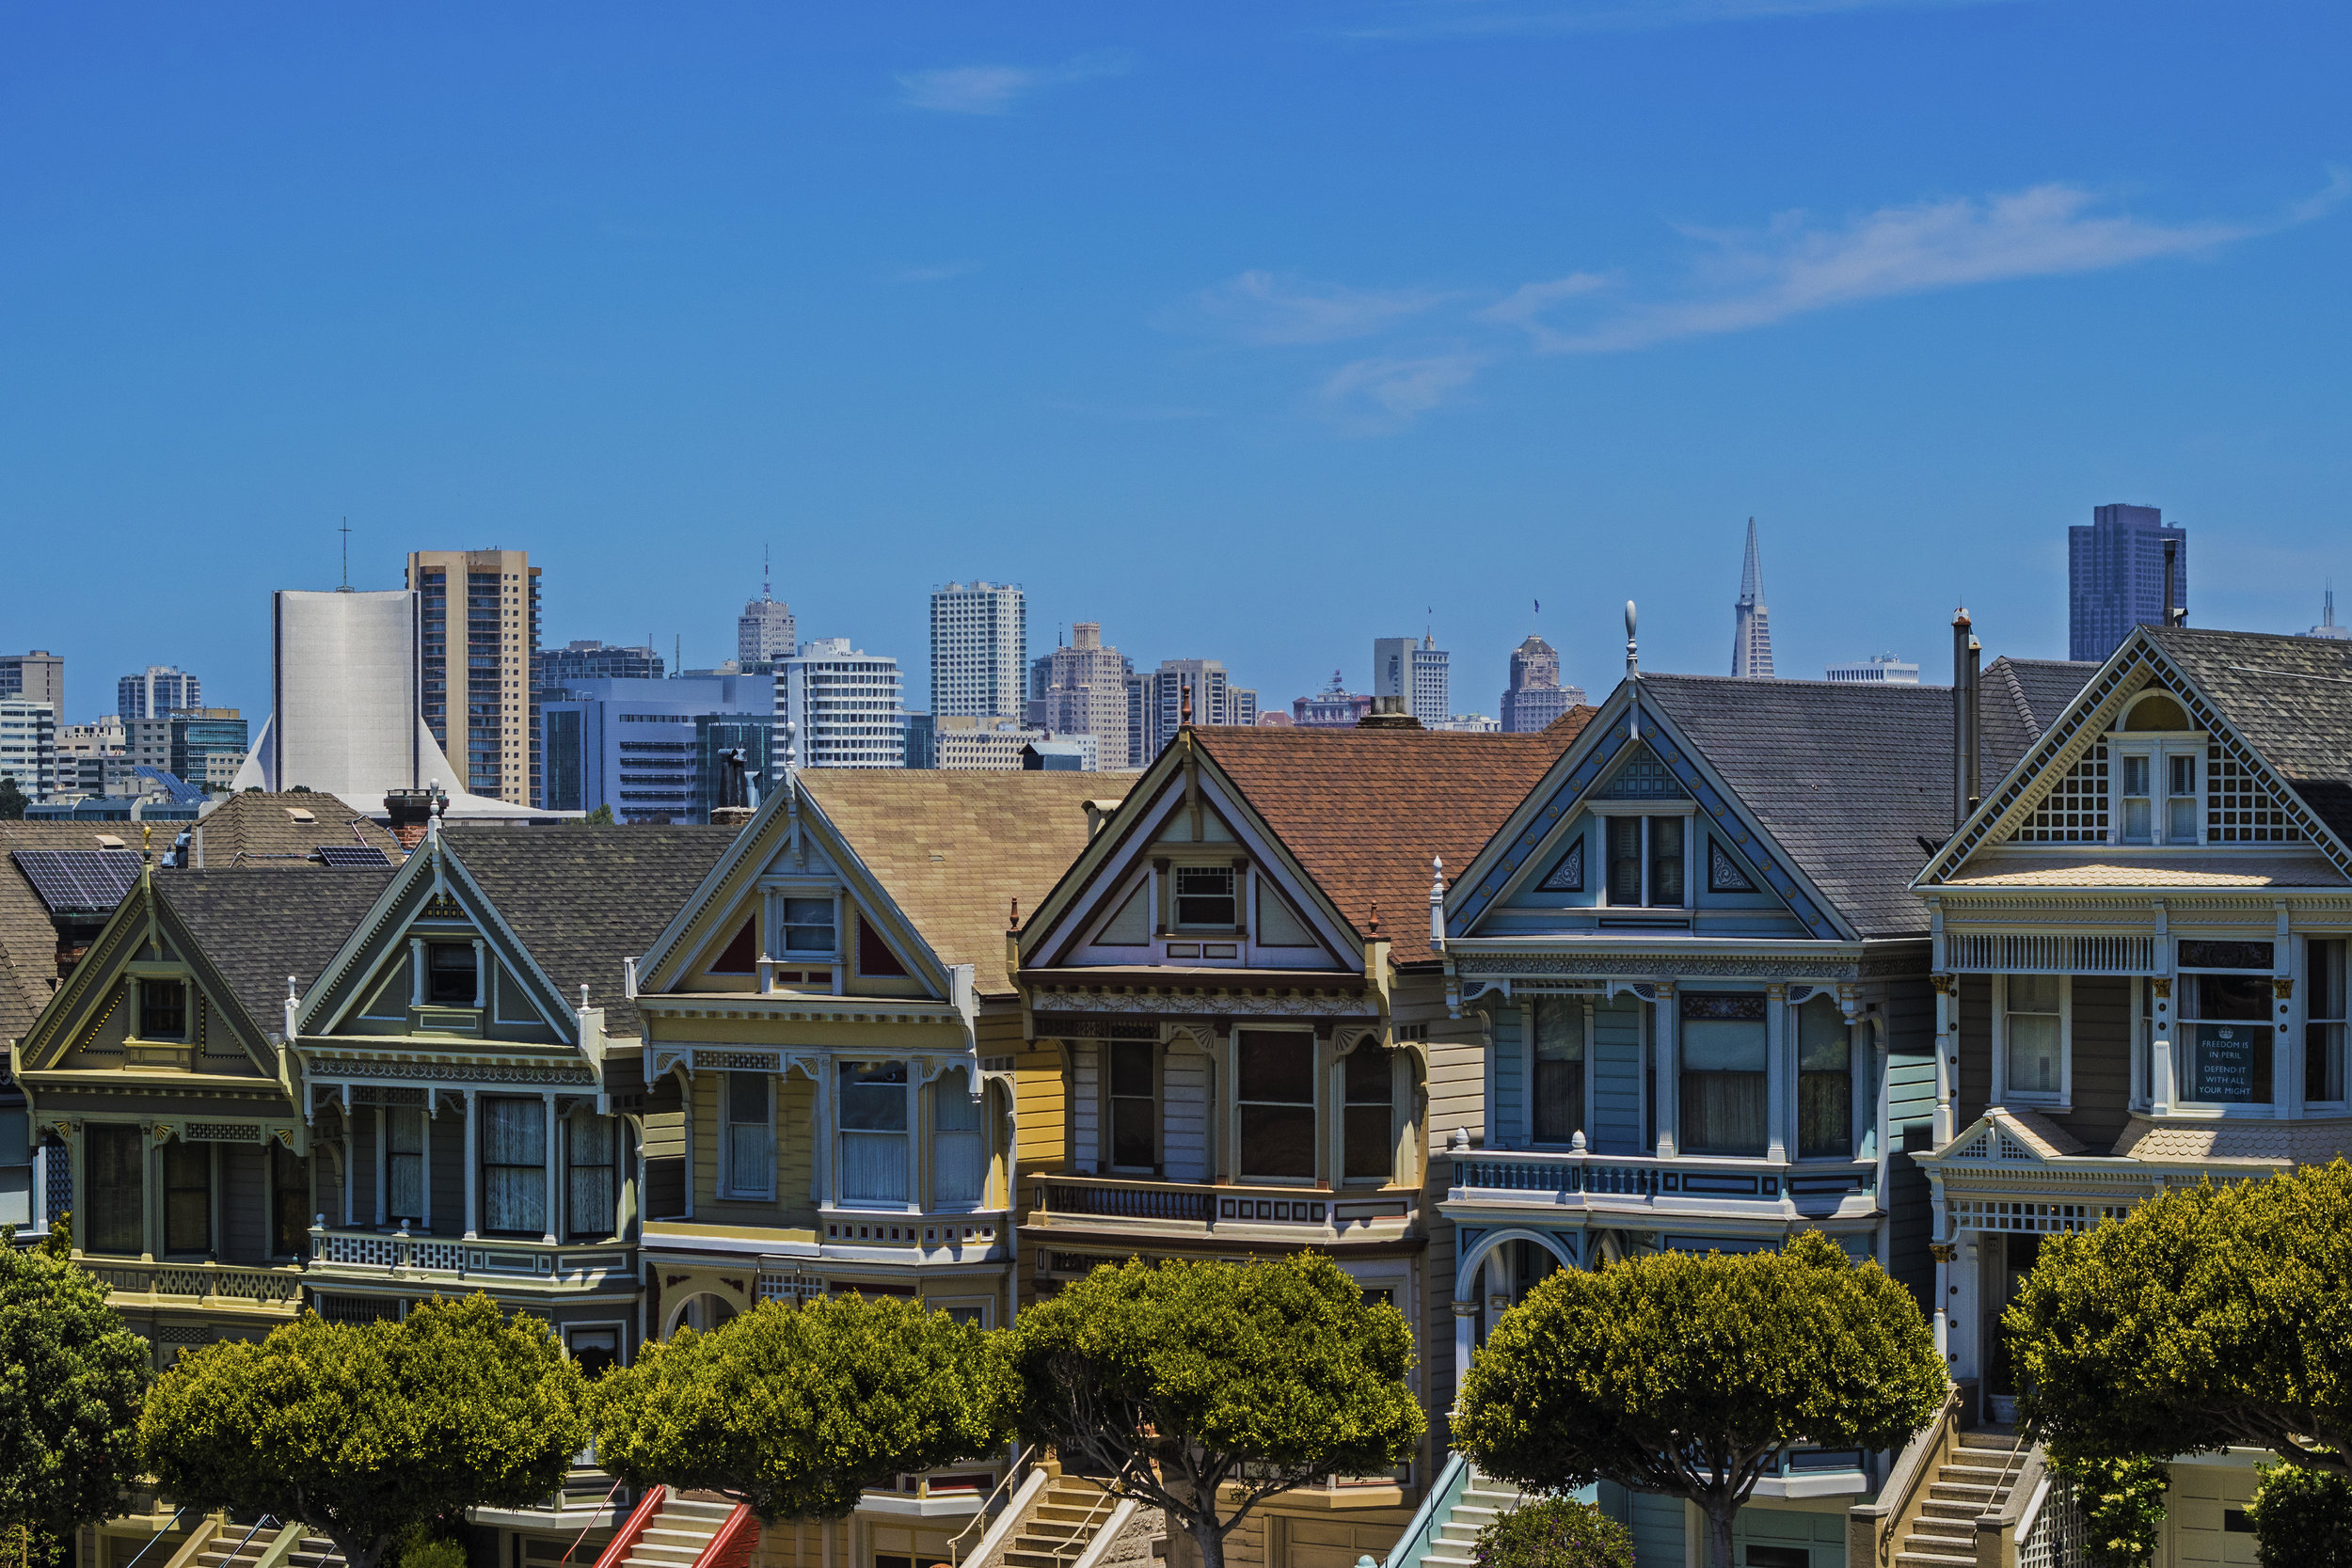 """The """"Painted Ladies"""" houses from the opening credits of """"Full House"""""""